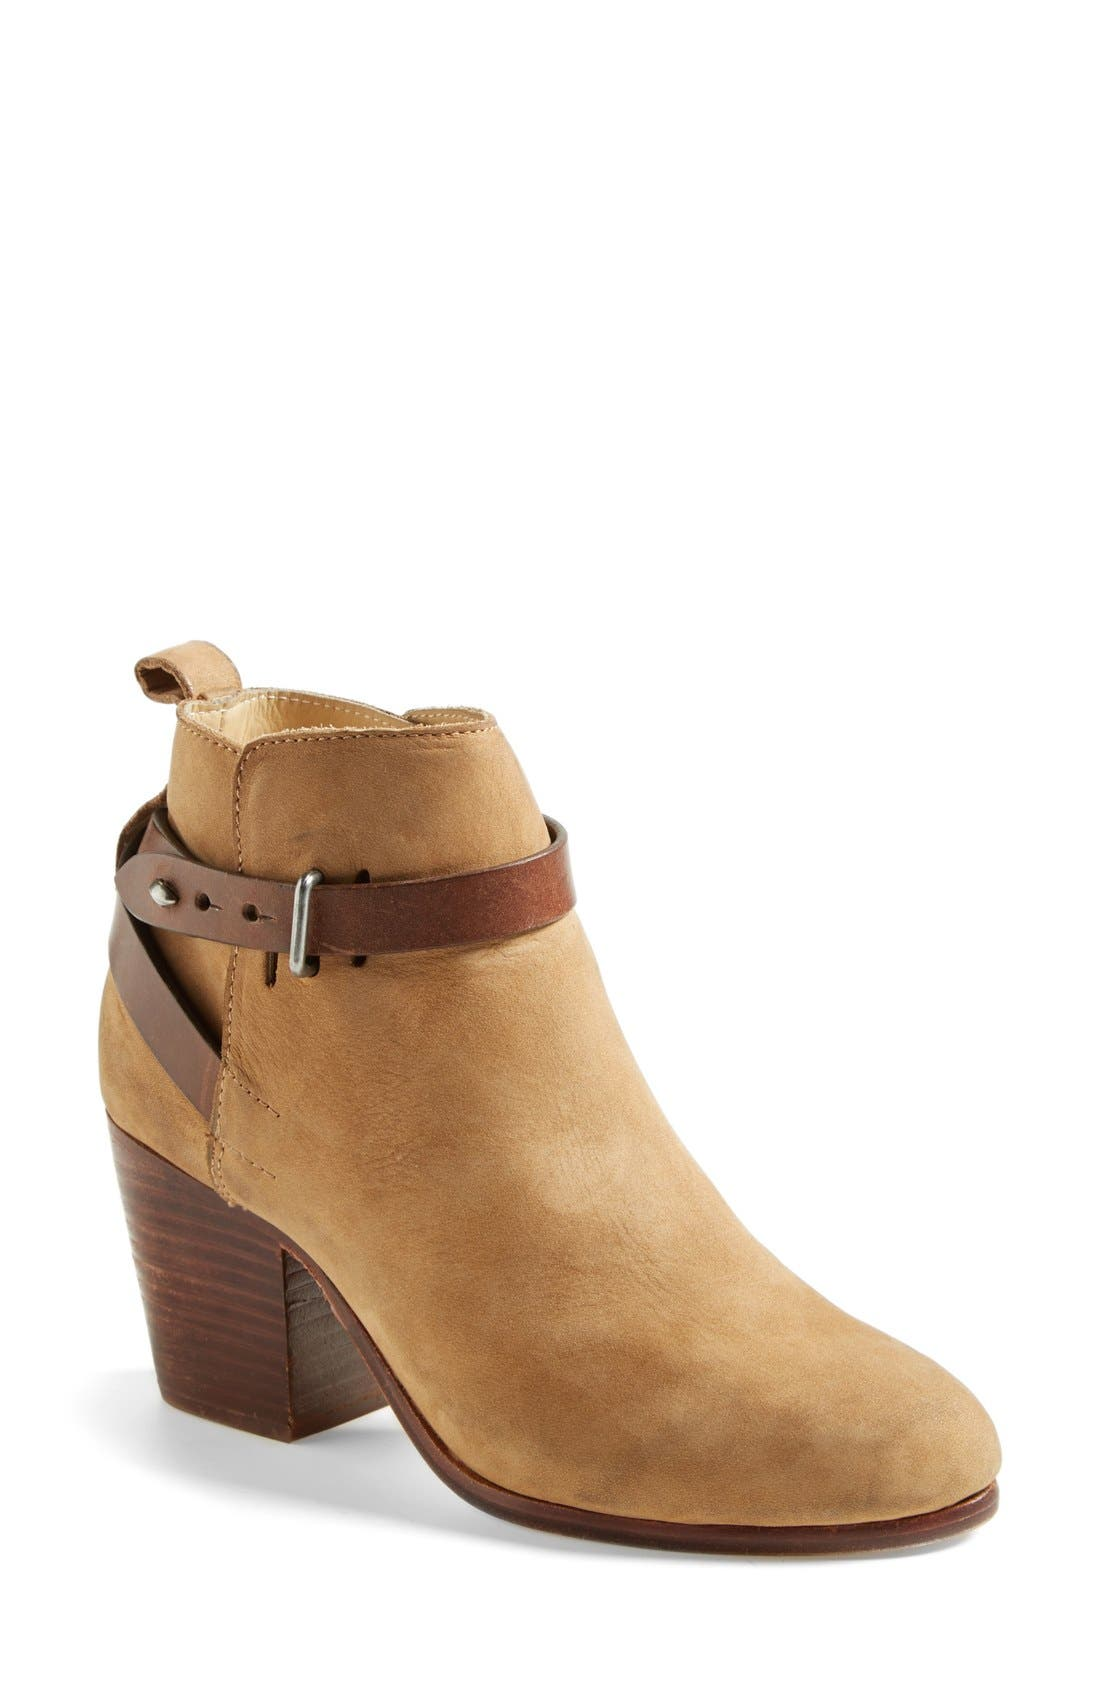 Alternate Image 1 Selected - rag & bone 'Dalton' Boot (Women)